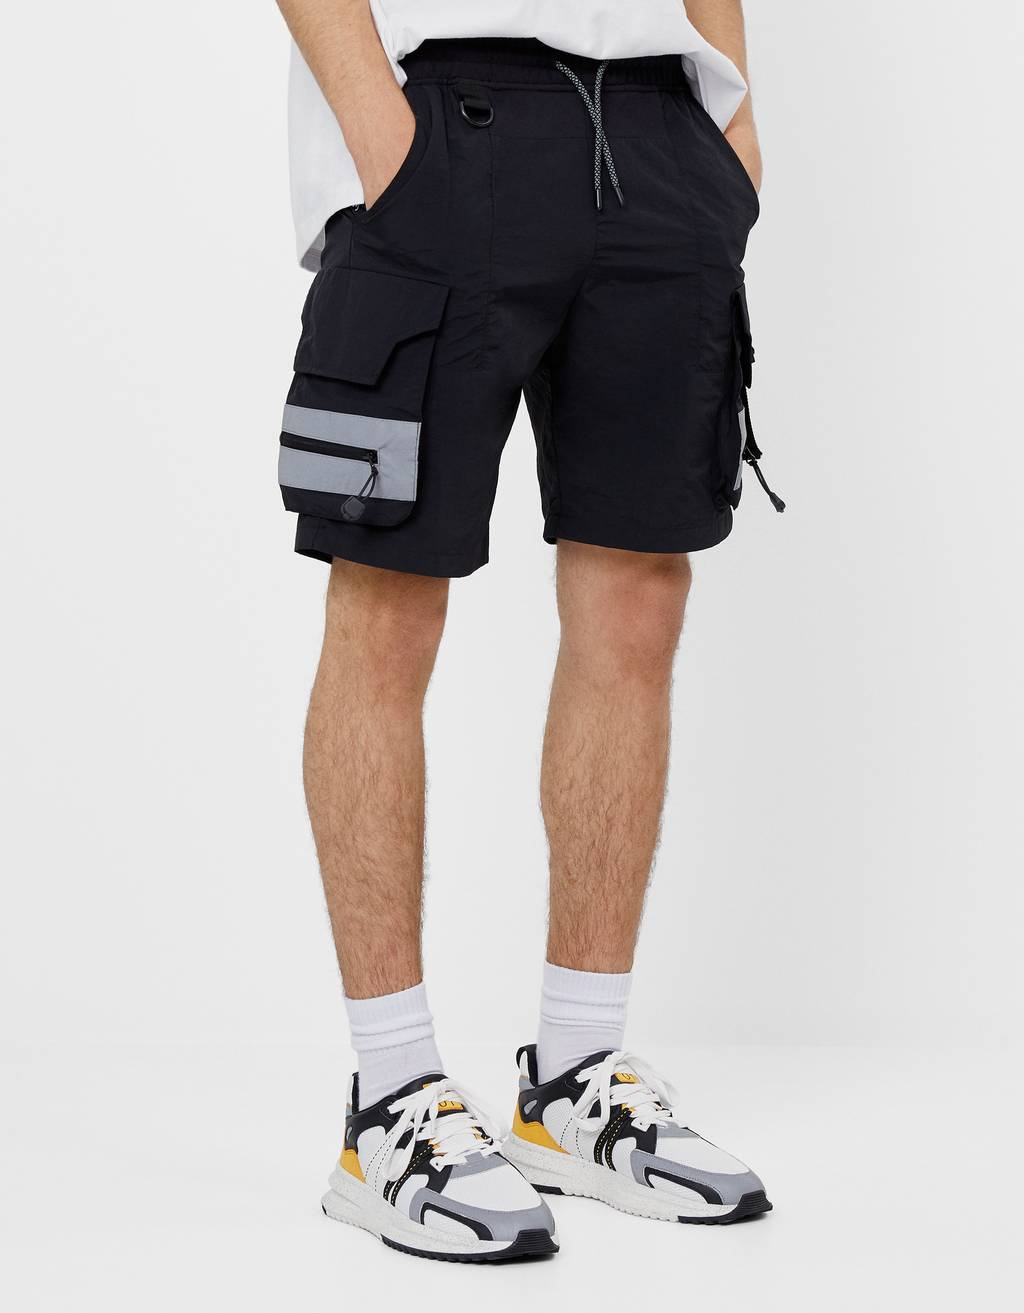 FUTURE-READY Bermuda short joggers